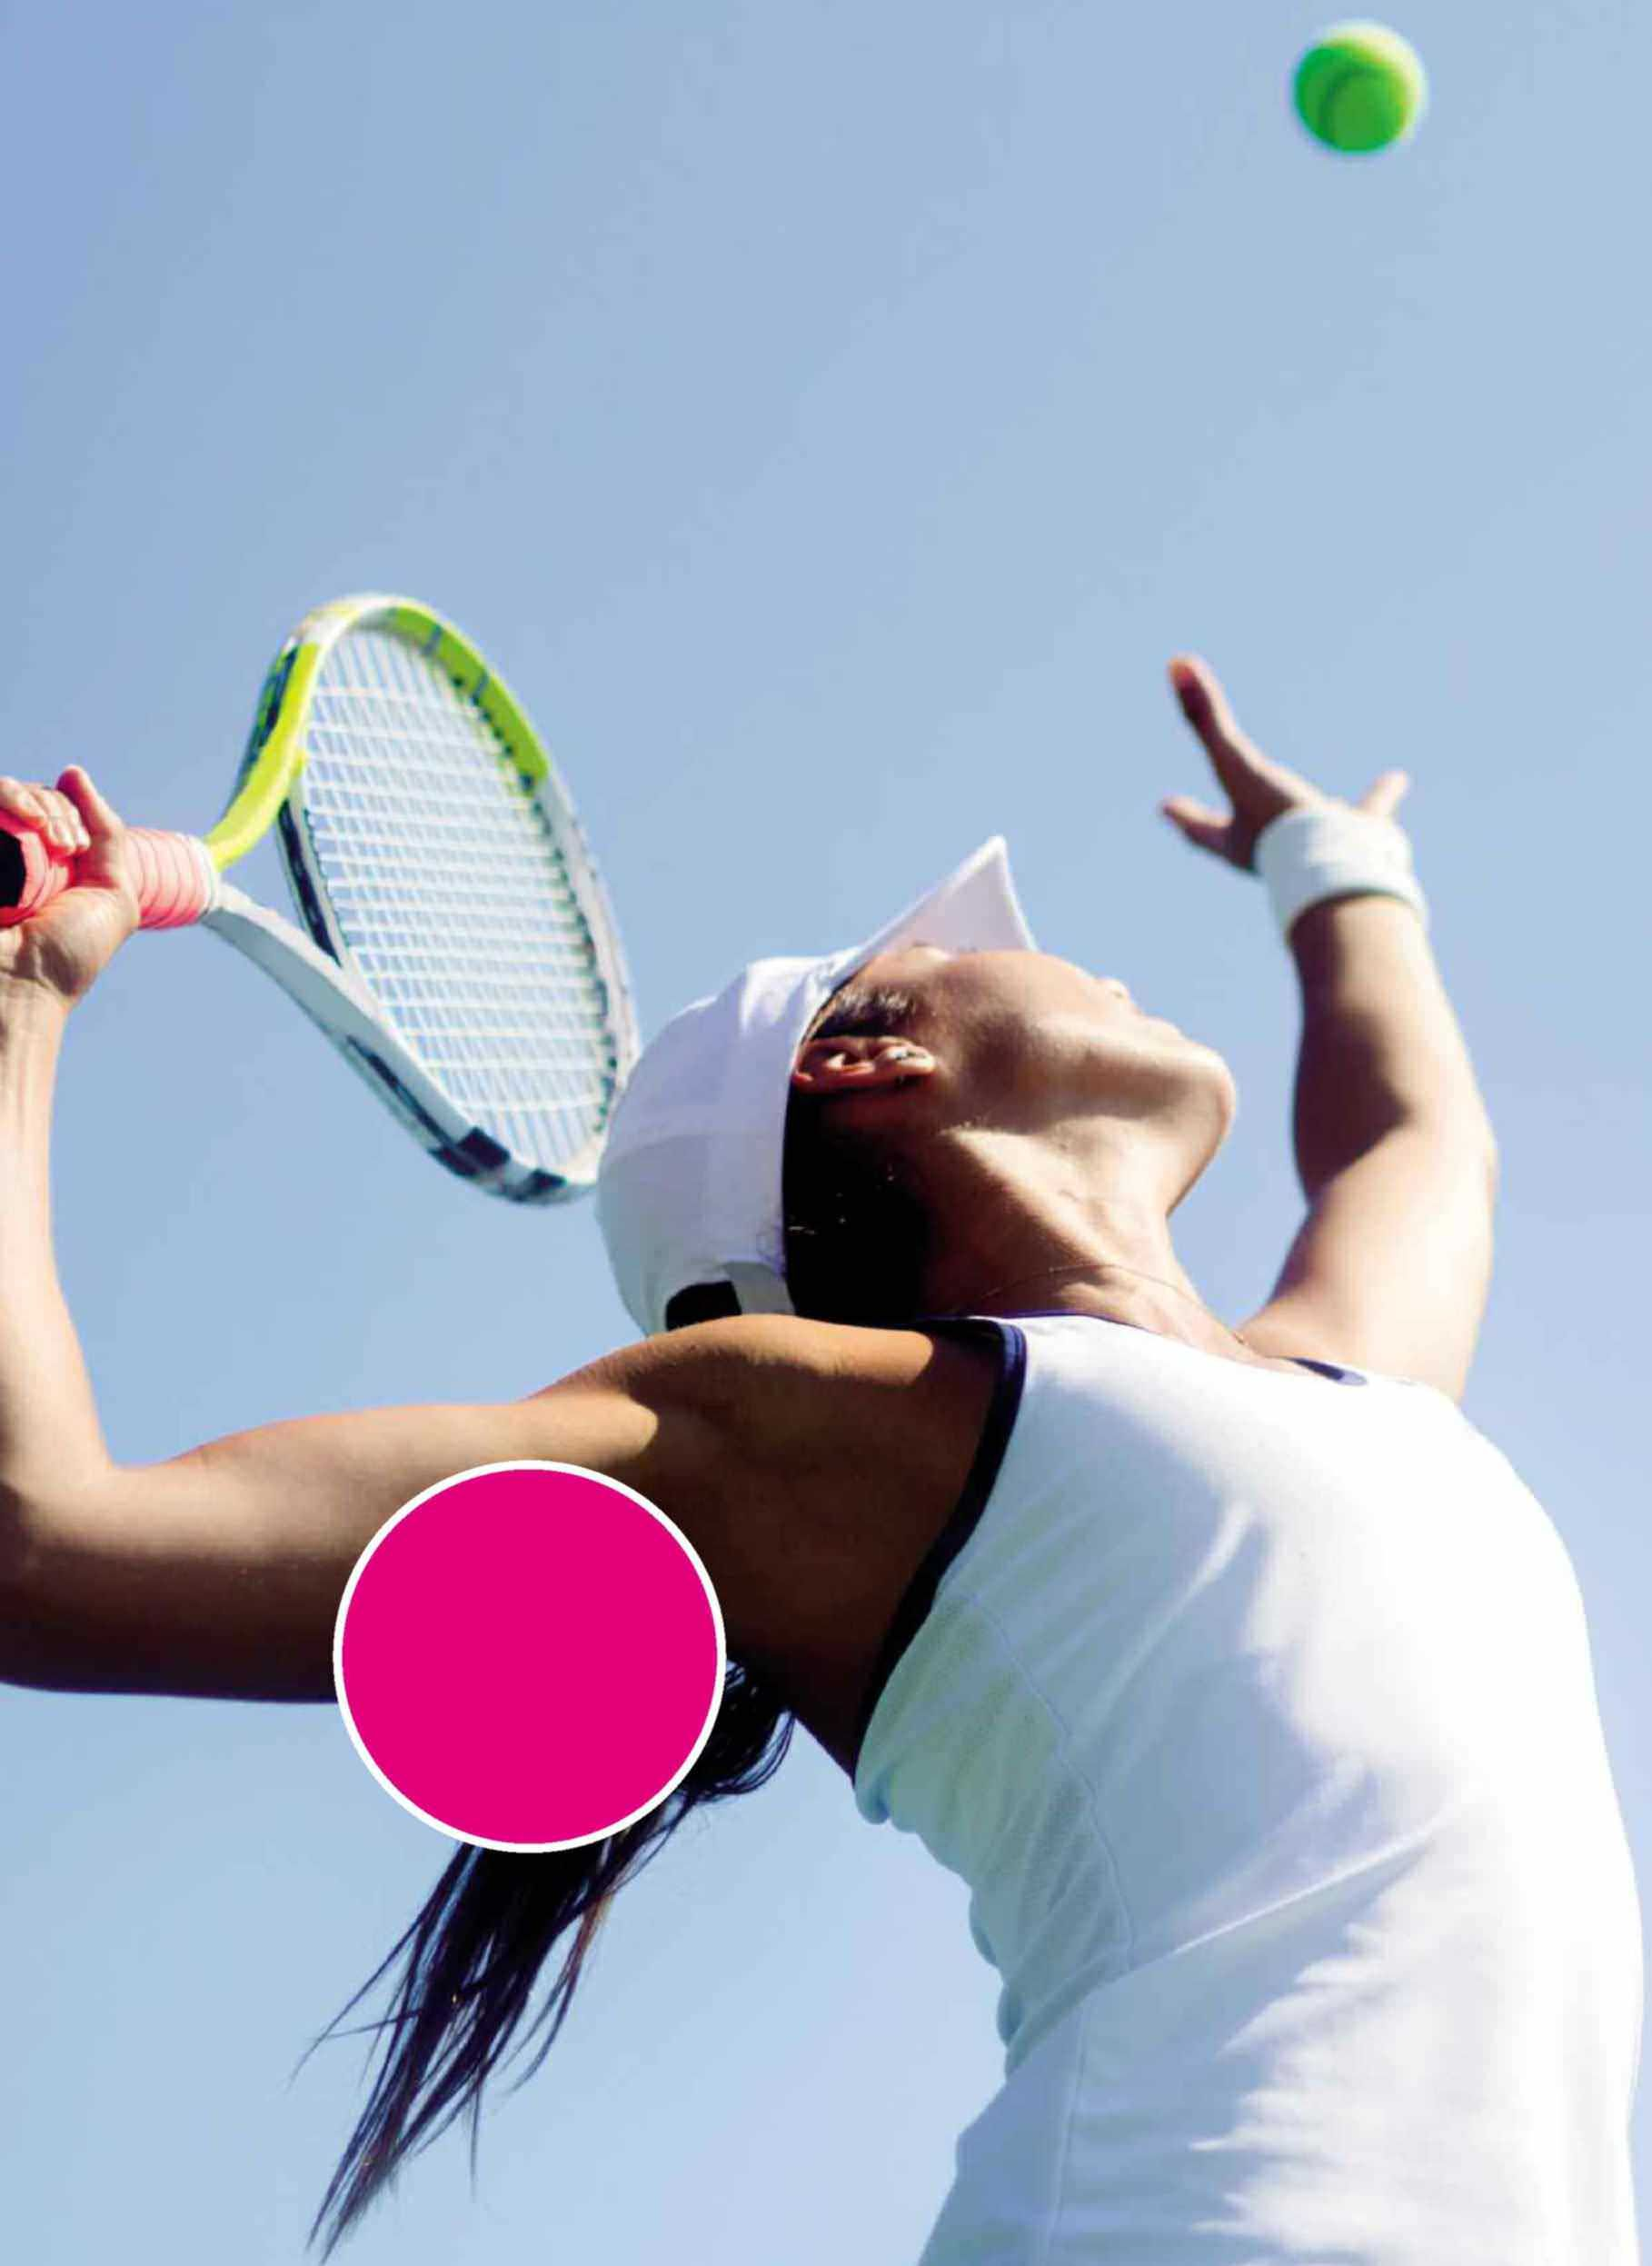 Workout Exercise Tennis Fitness